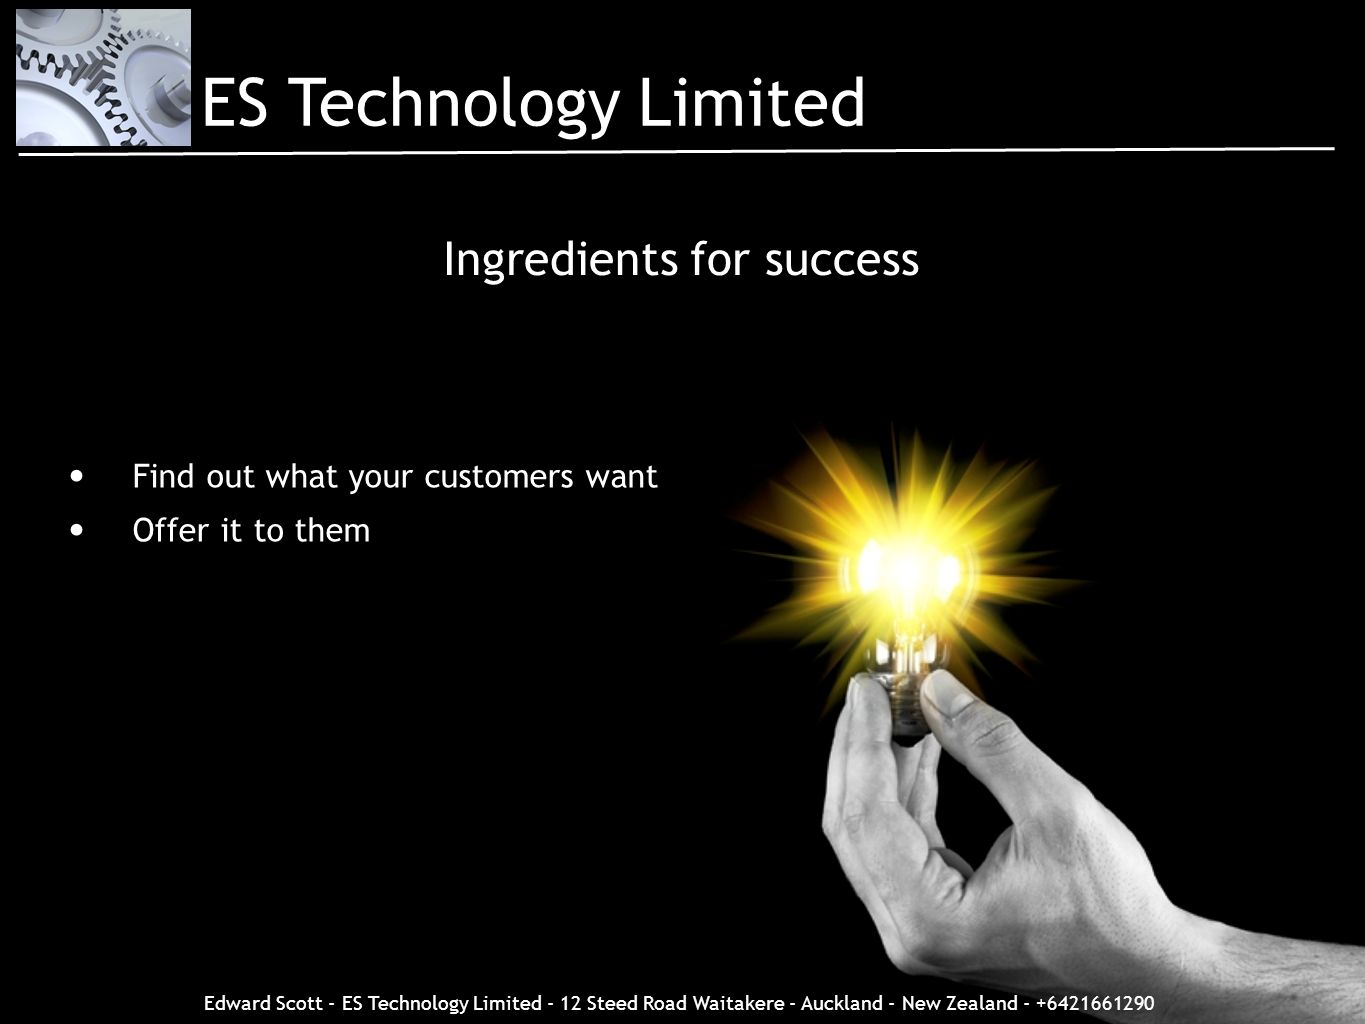 Edward Scott - ES Technology Limited - 12 Steed Road Waitakere - Auckland - New Zealand - +6421661290 Ingredients for success Find out what your custo